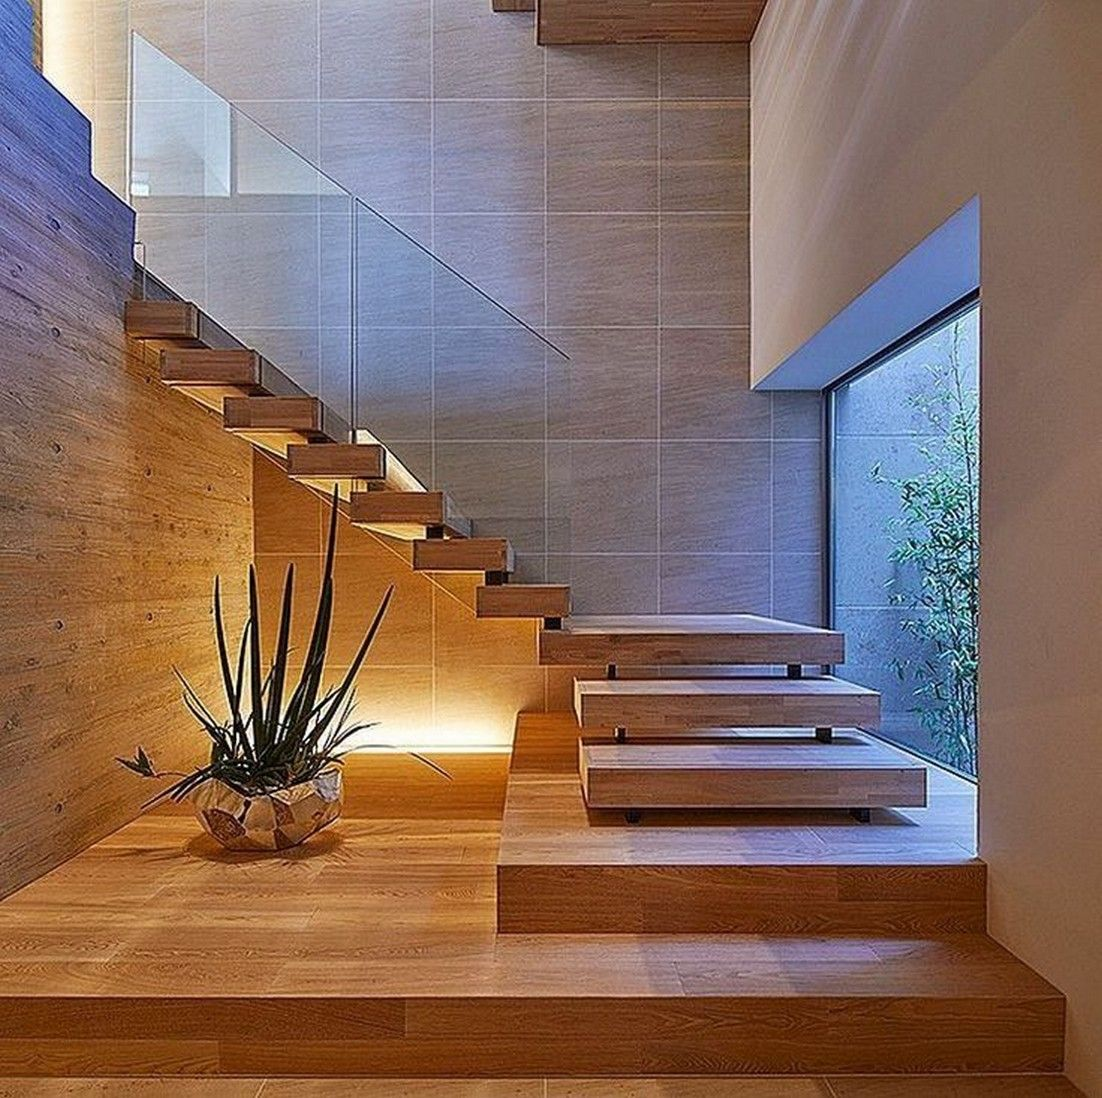 Impressive Stairs Pictures 2 Wood Stair Design Ideas: 65+ Beautiful Wooden Stair Design Ideas For Your Home 3 En